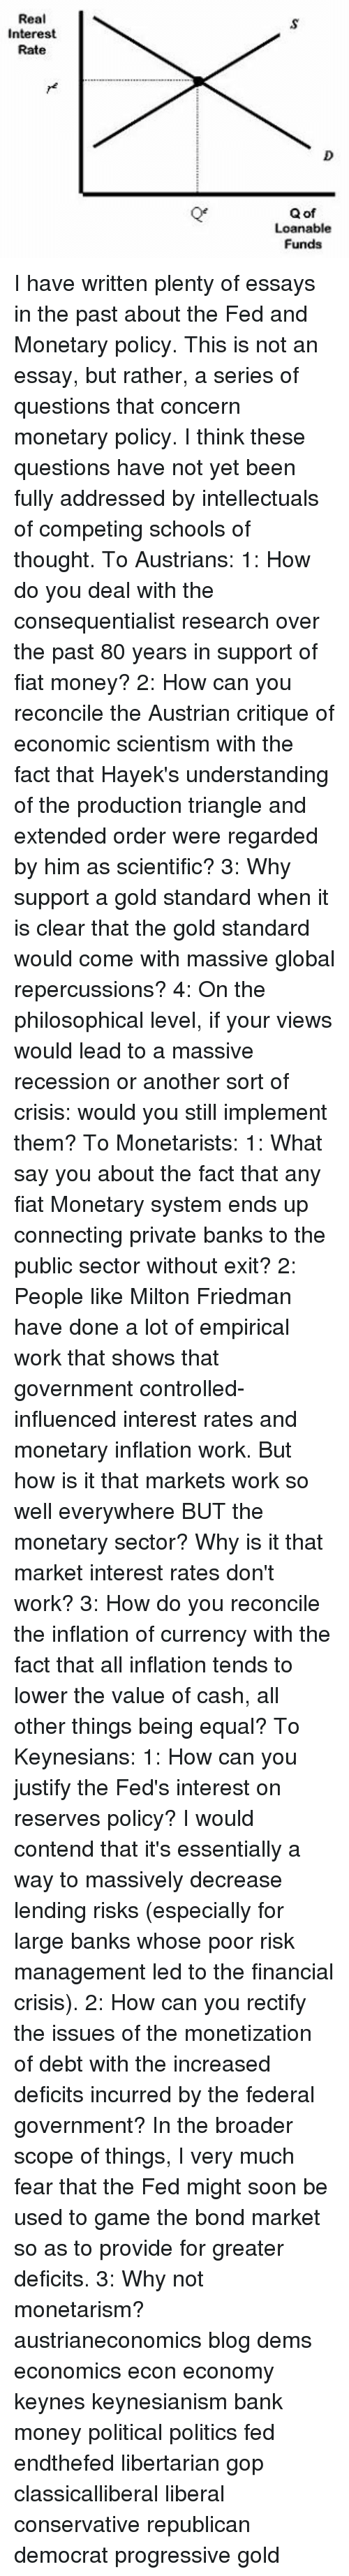 milton friedman essays debates why is libertarianism wrong the  meme real interest rate q of loanable funds i have written plenty memes recess and fiat lanny ebenstein the indispensable milton friedman